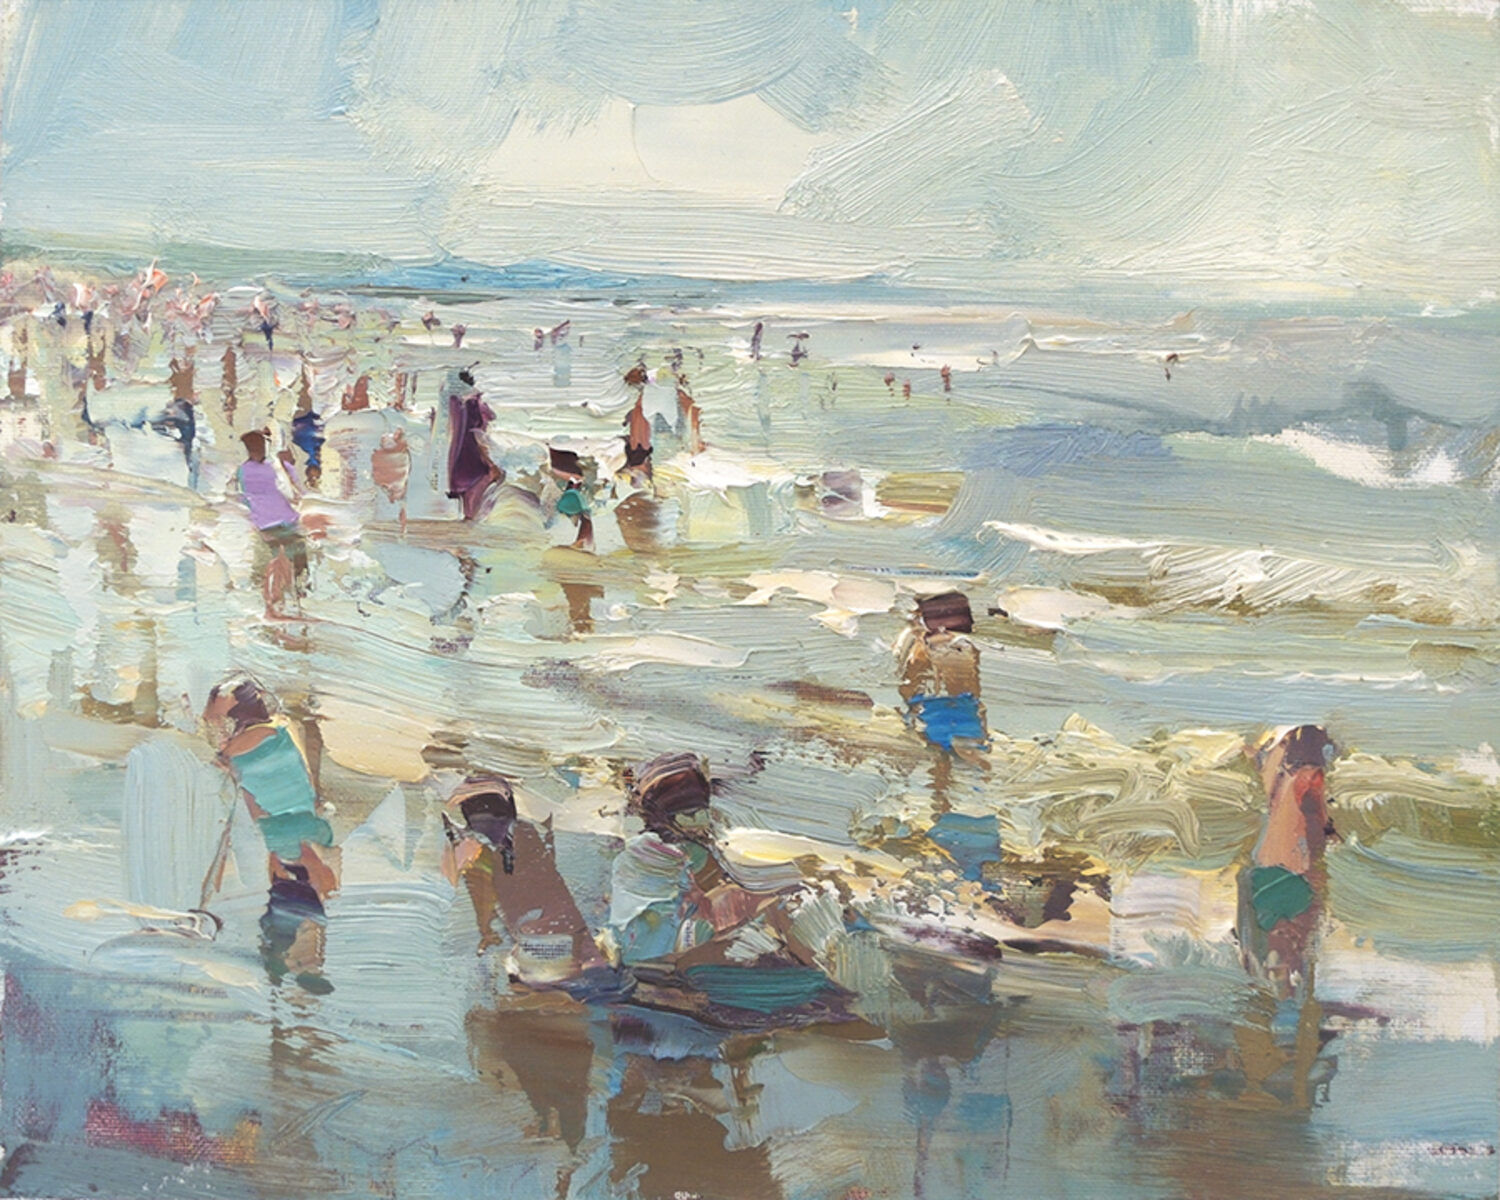 Roos Schuring, 'Summer's Day at the Beach' ,